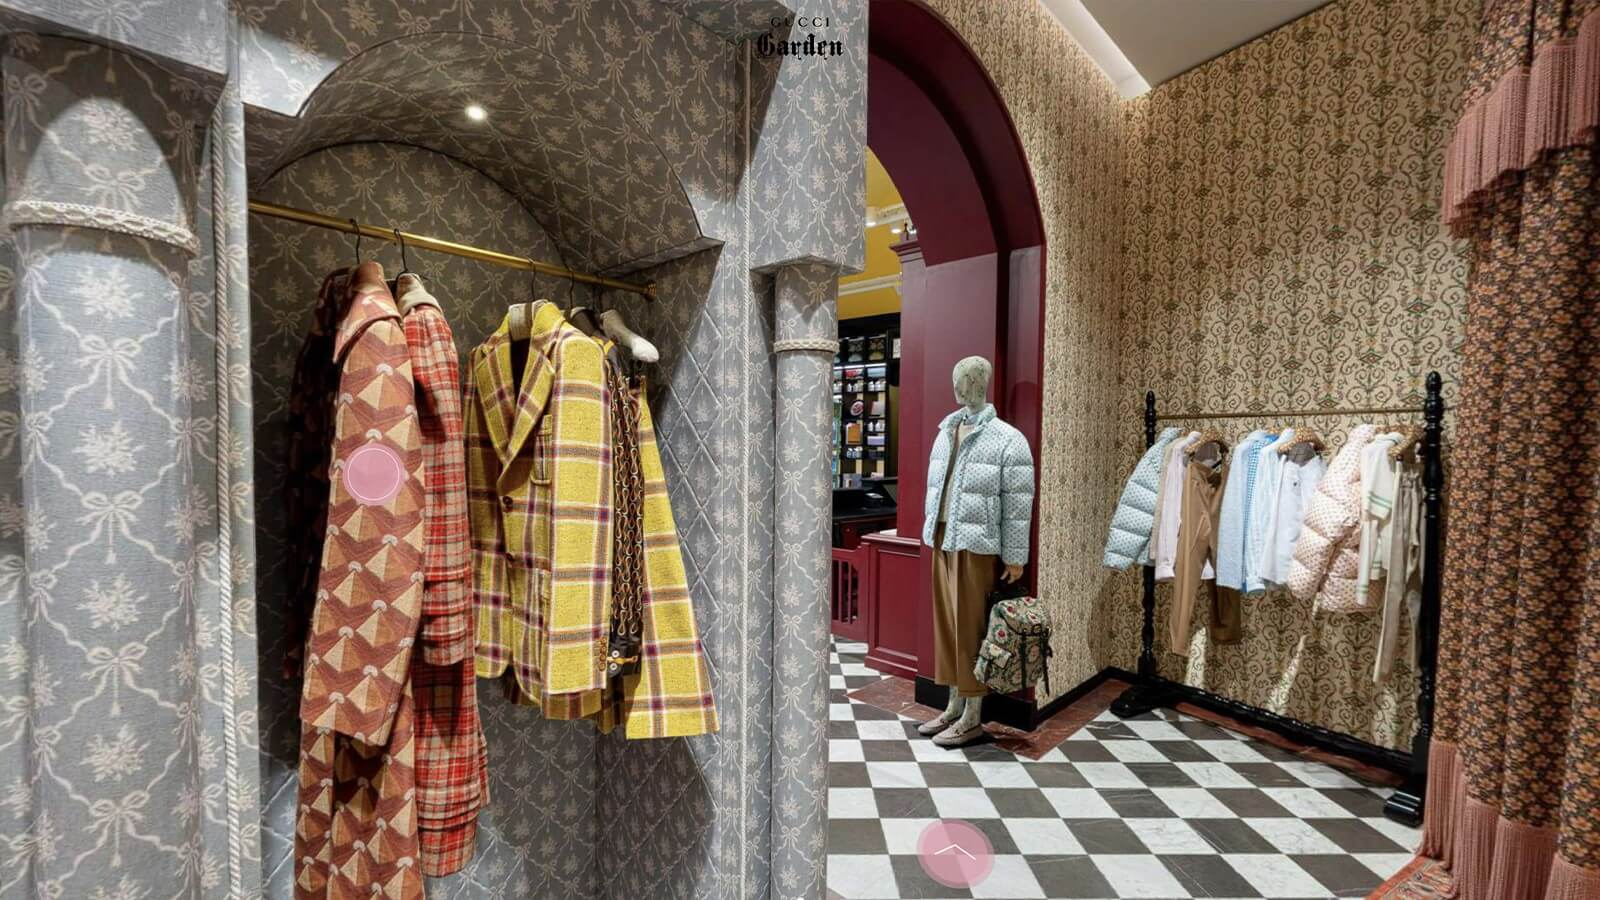 A 3D Virtual space image used as part of a digital marketing strategy for gucci